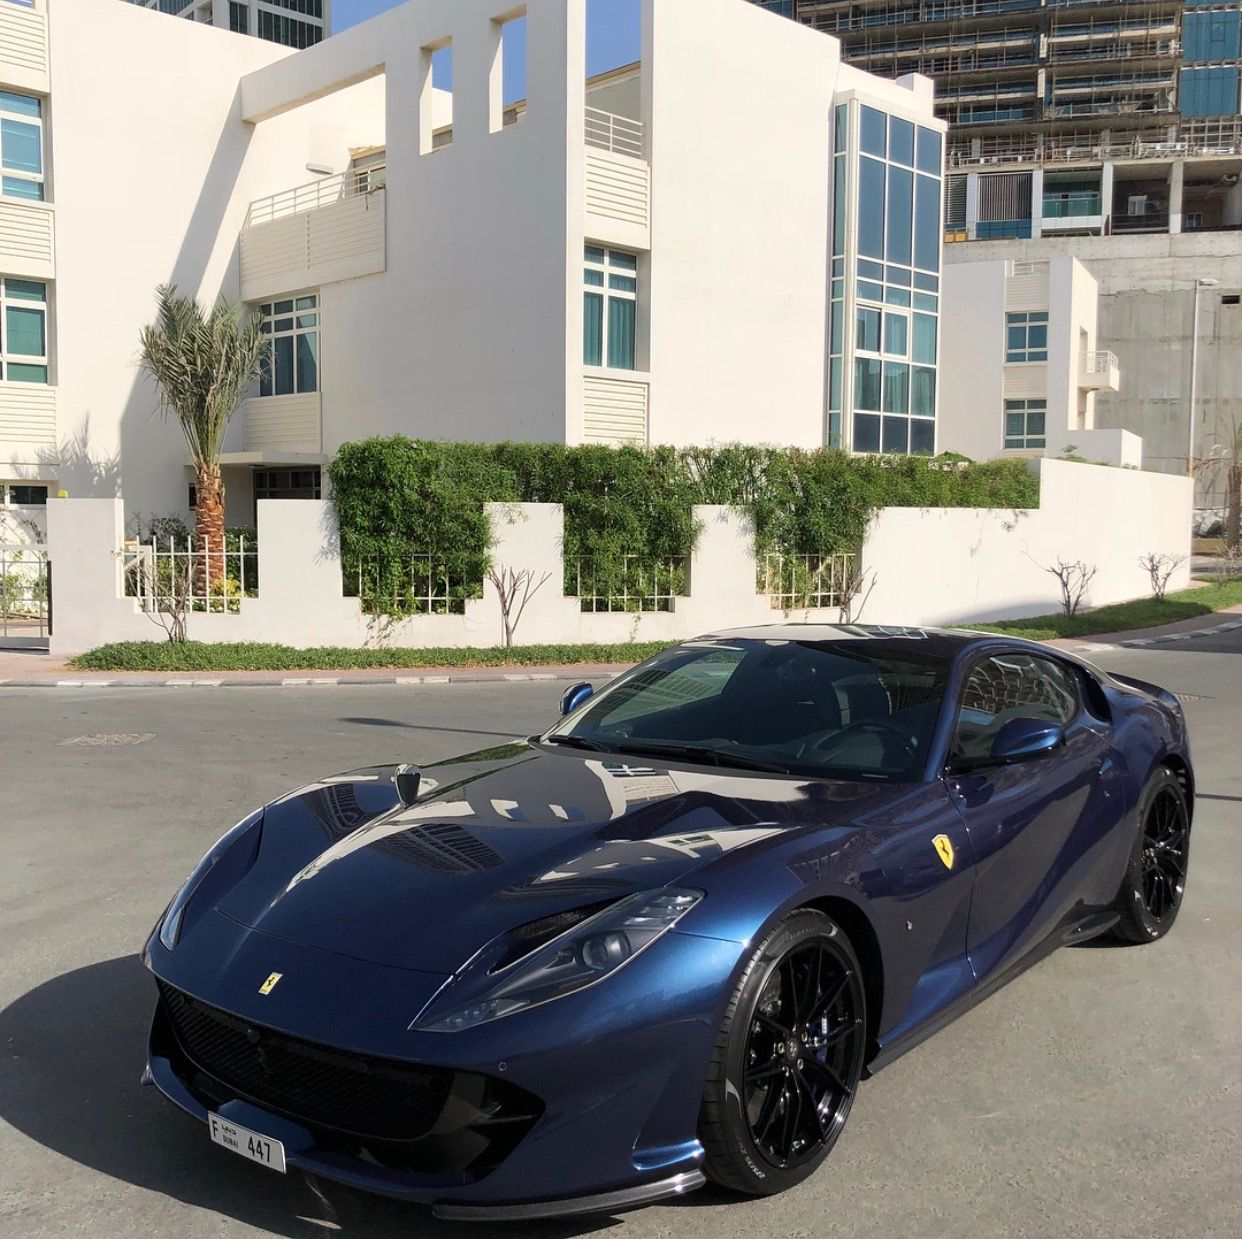 Ferrari 812 Superfast: Ferrari 812 Superfast Painted In Blu Swaters Photo Taken